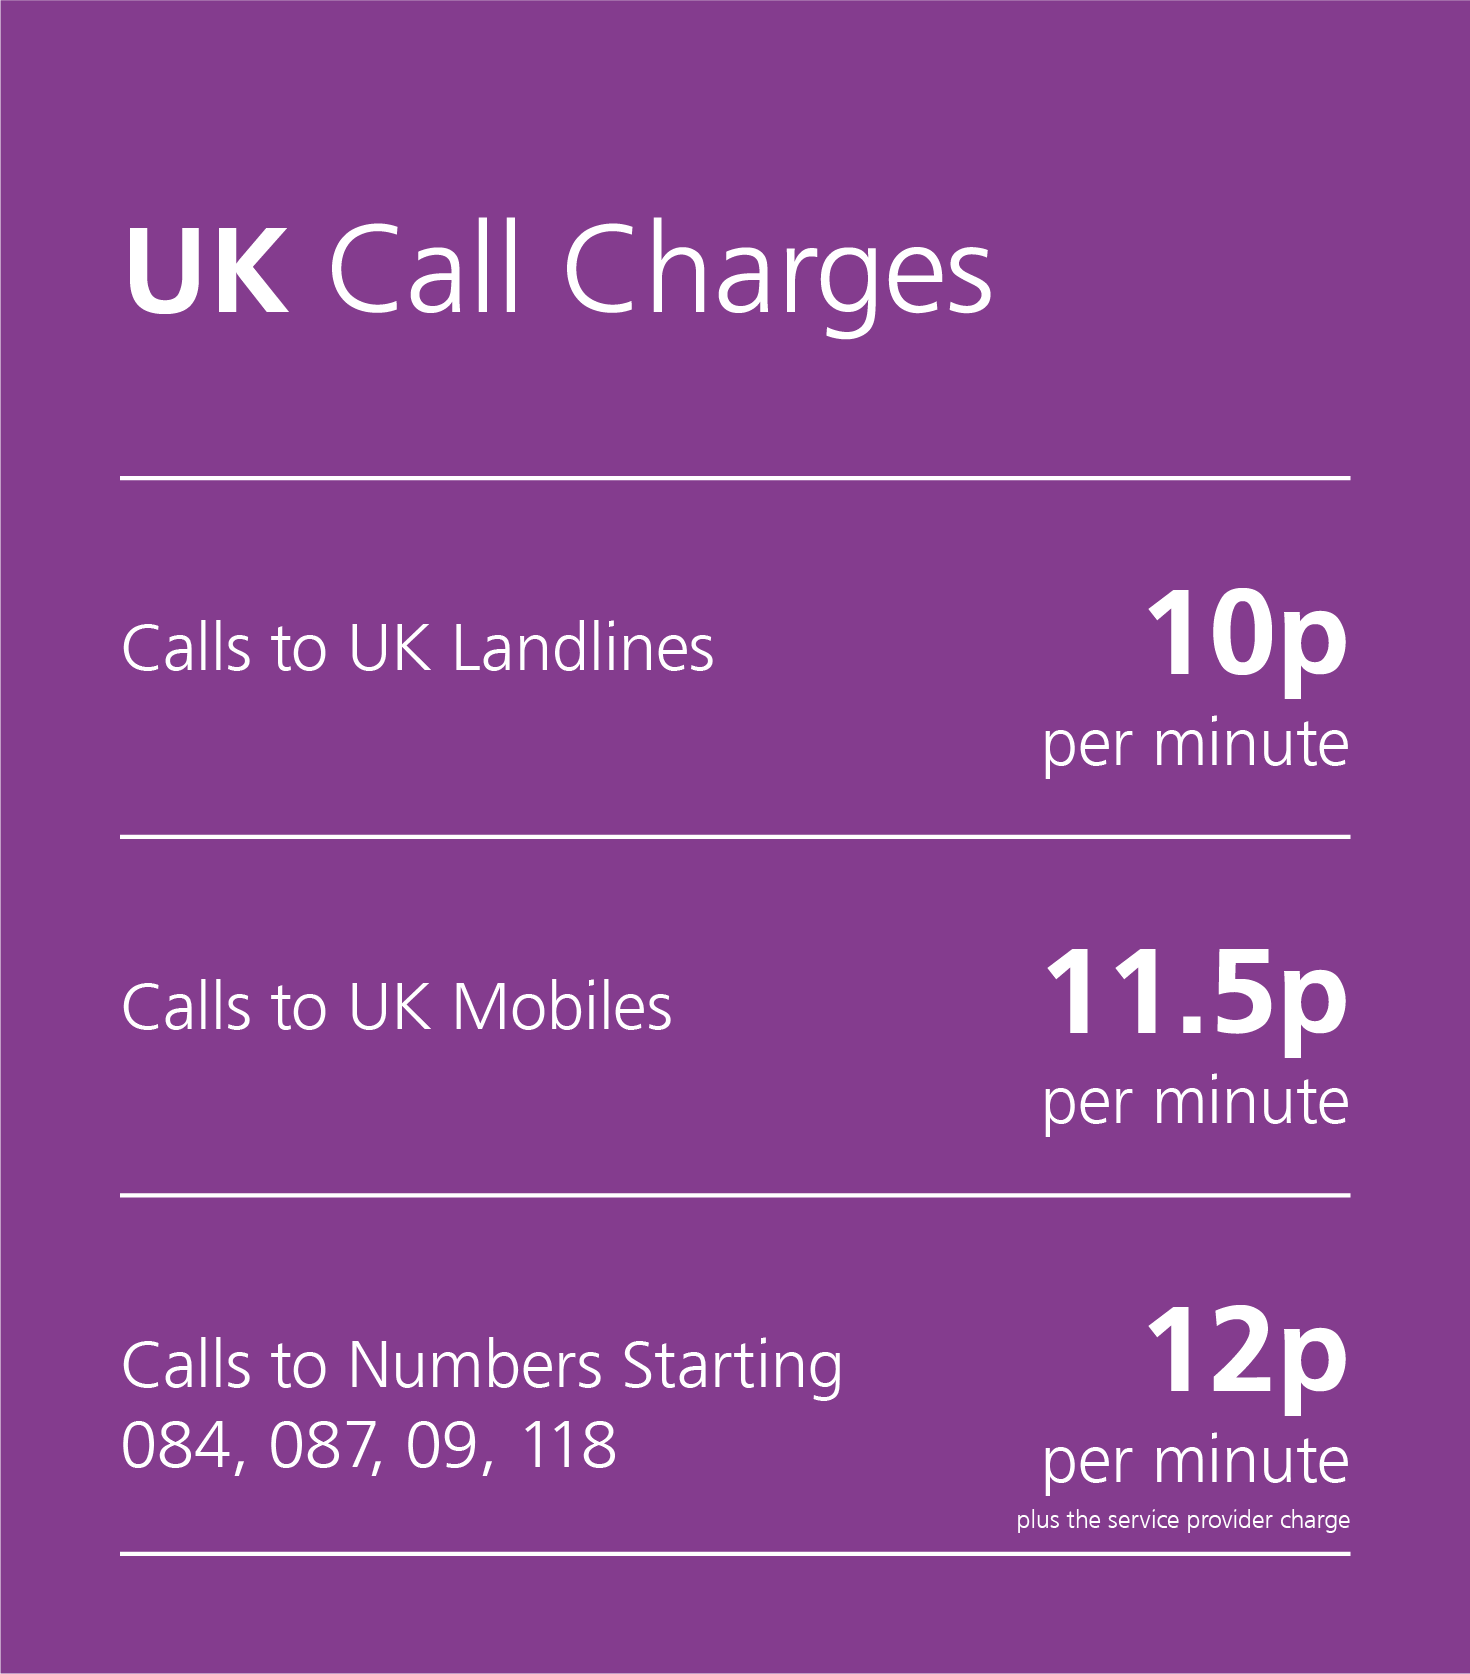 No matter how you use the phone, we have a call packages to suit your needs